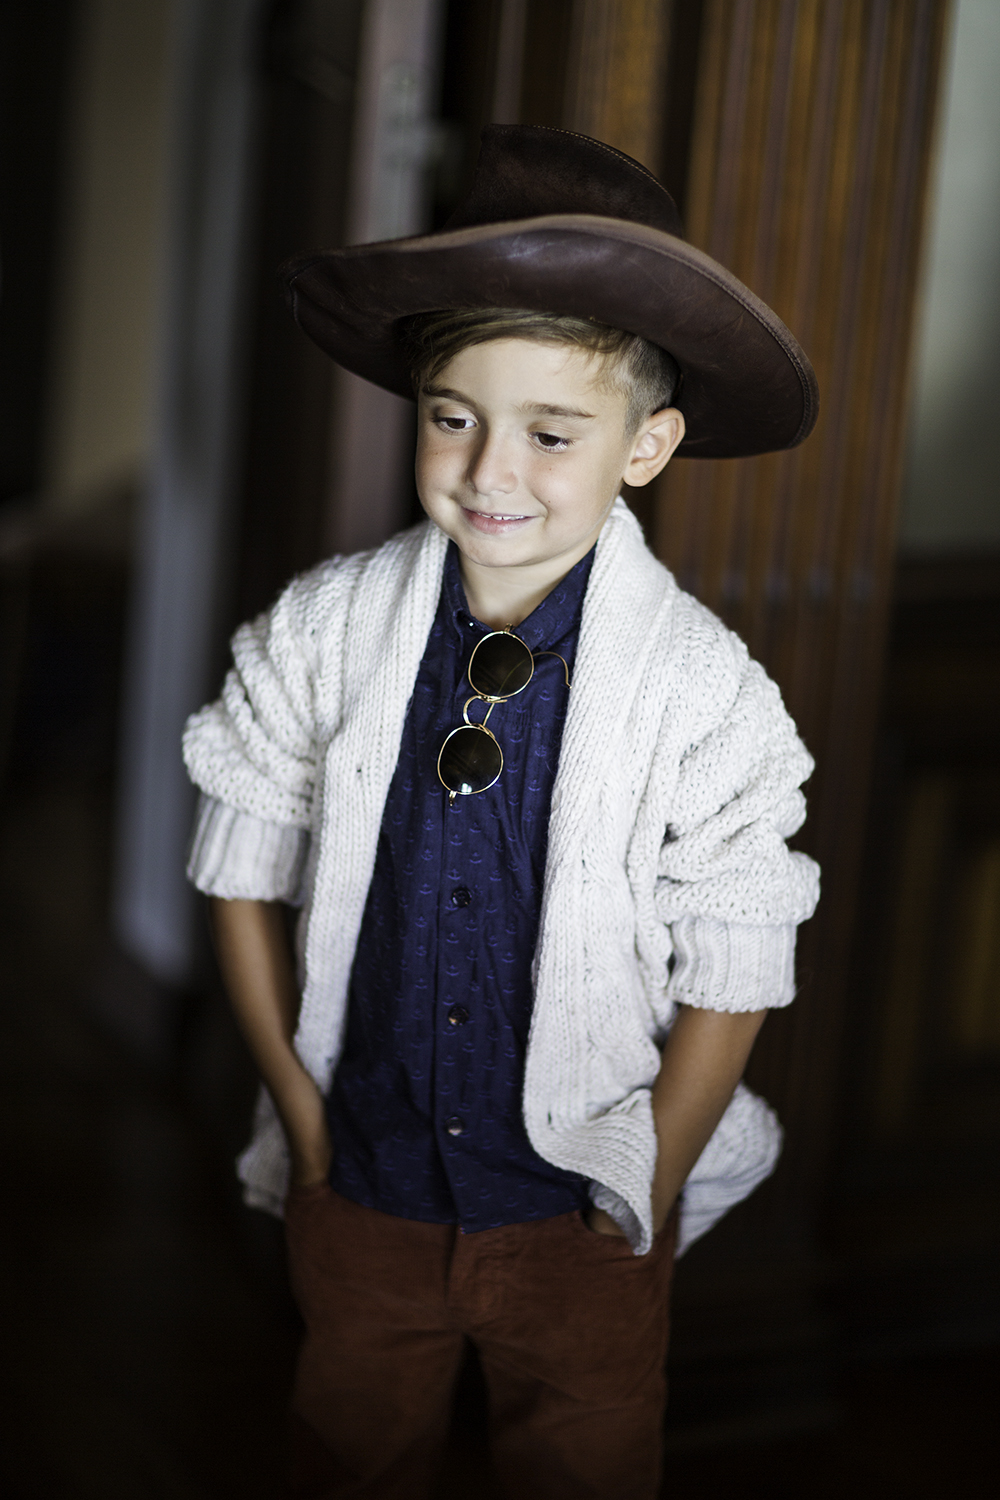 alonso_mateo_kids_fashion_felicidad_de_lucas_photographer_04.jpg